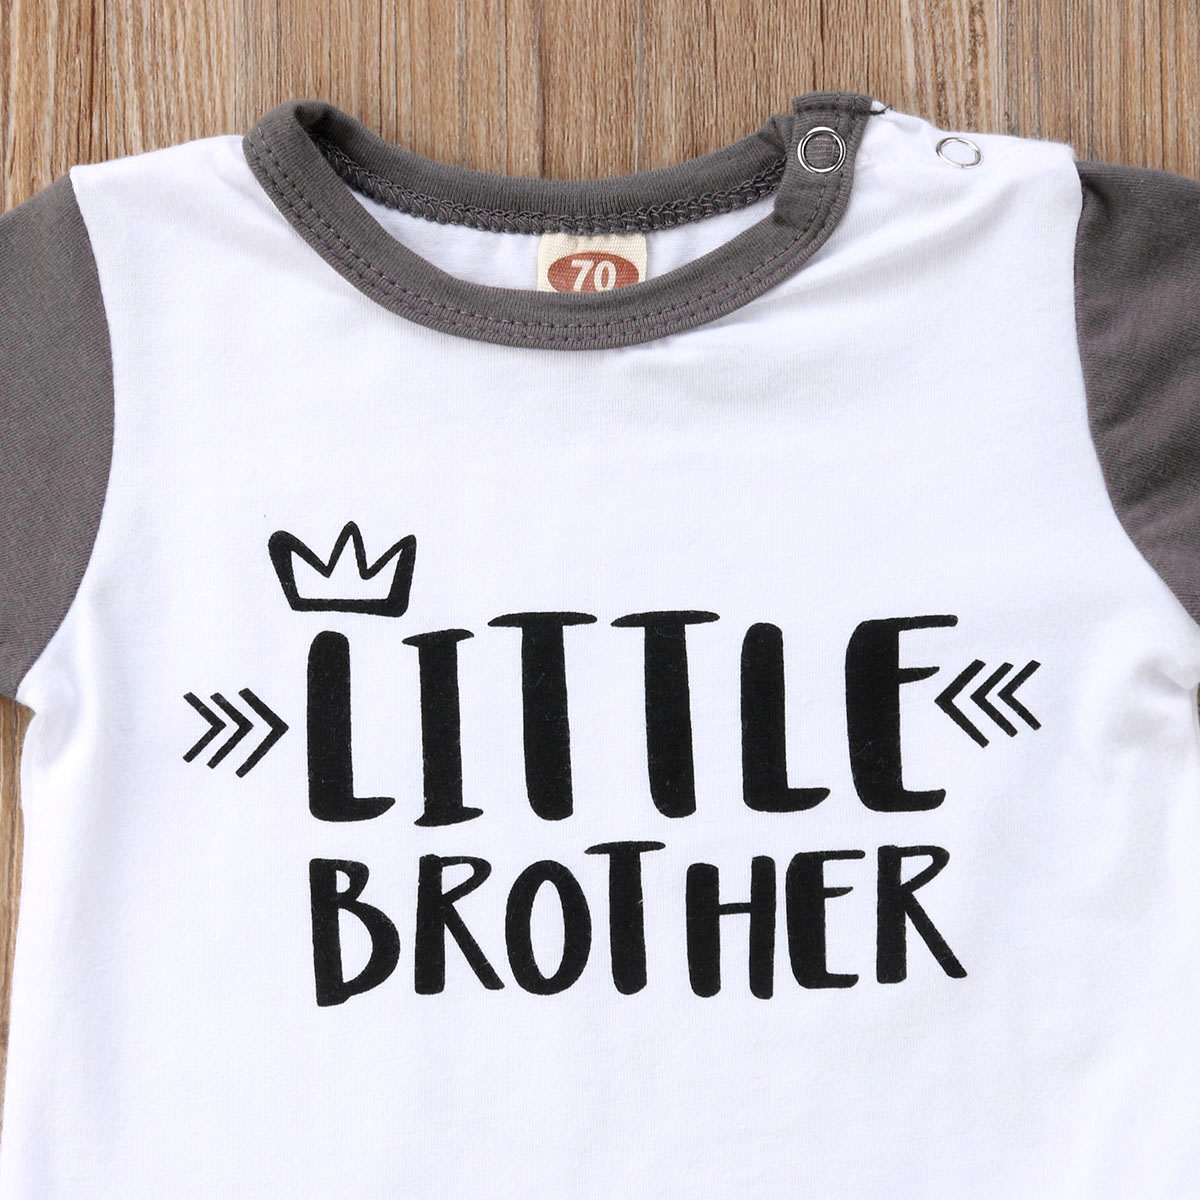 b9a1848c5 0-24M Toddler Baby Boys clothes set Tops Little Brother Romper Top ...